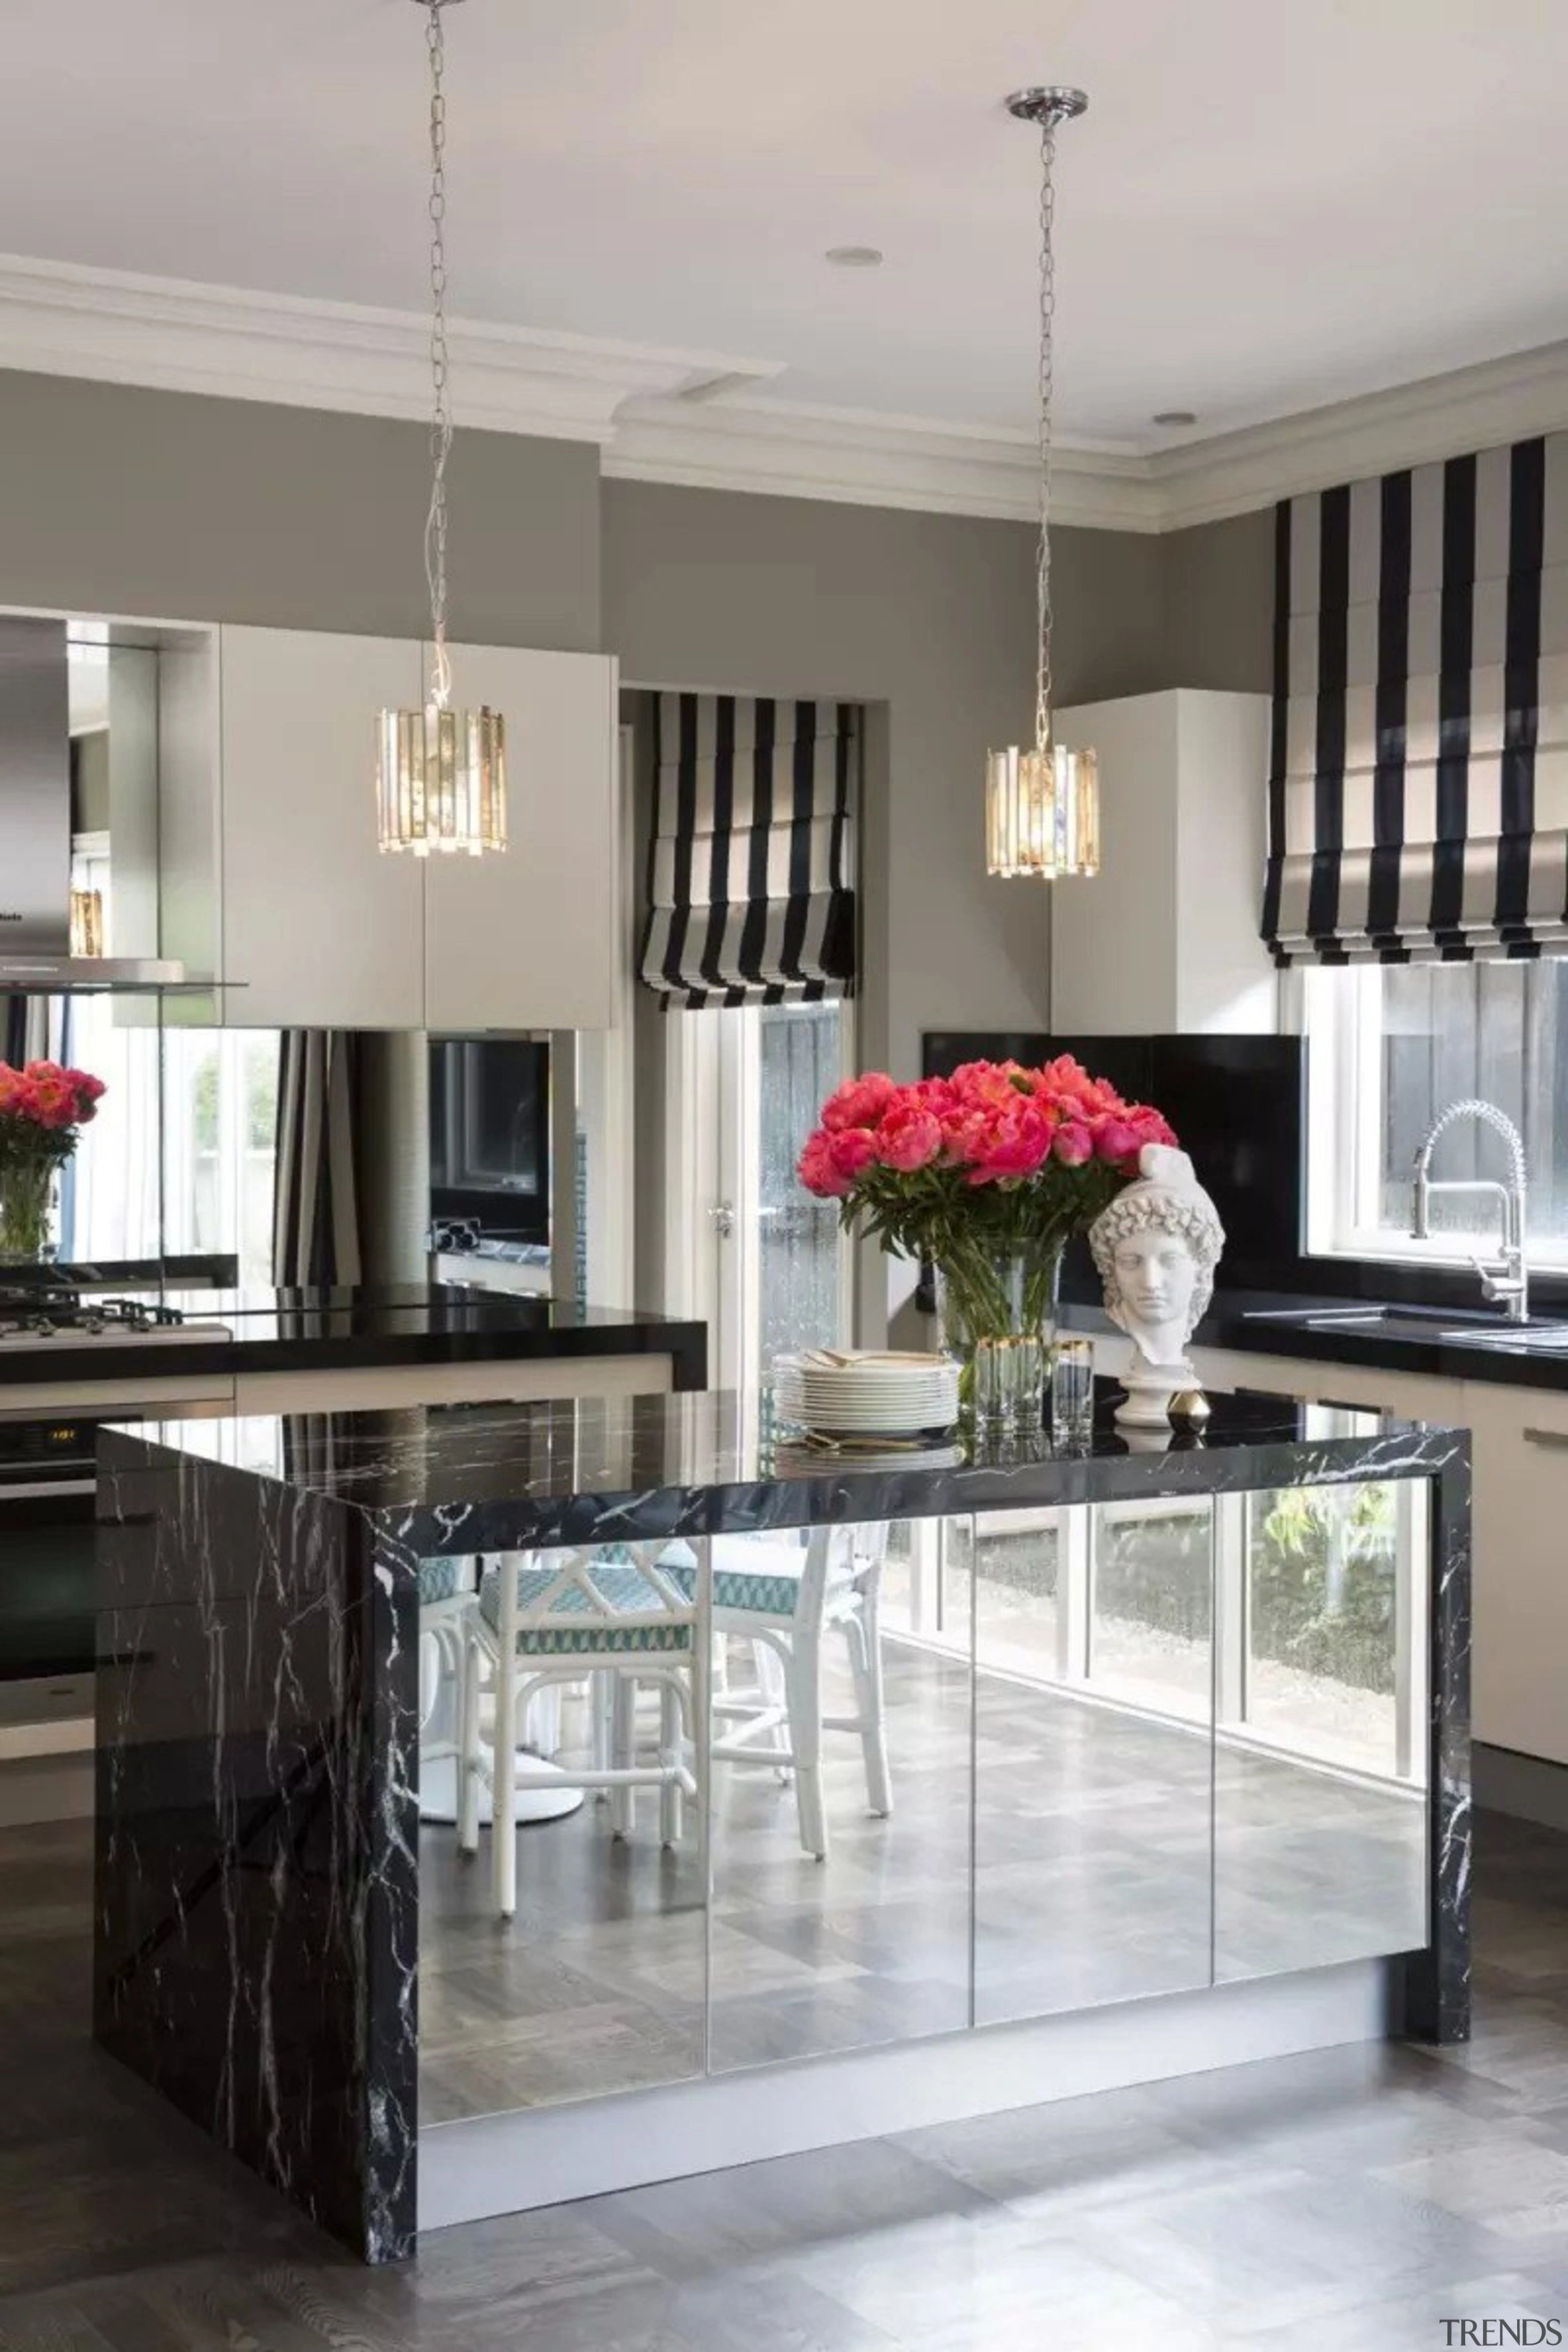 Interiors Cuisine French Classic Style Residence By M Gallery 31 Trends